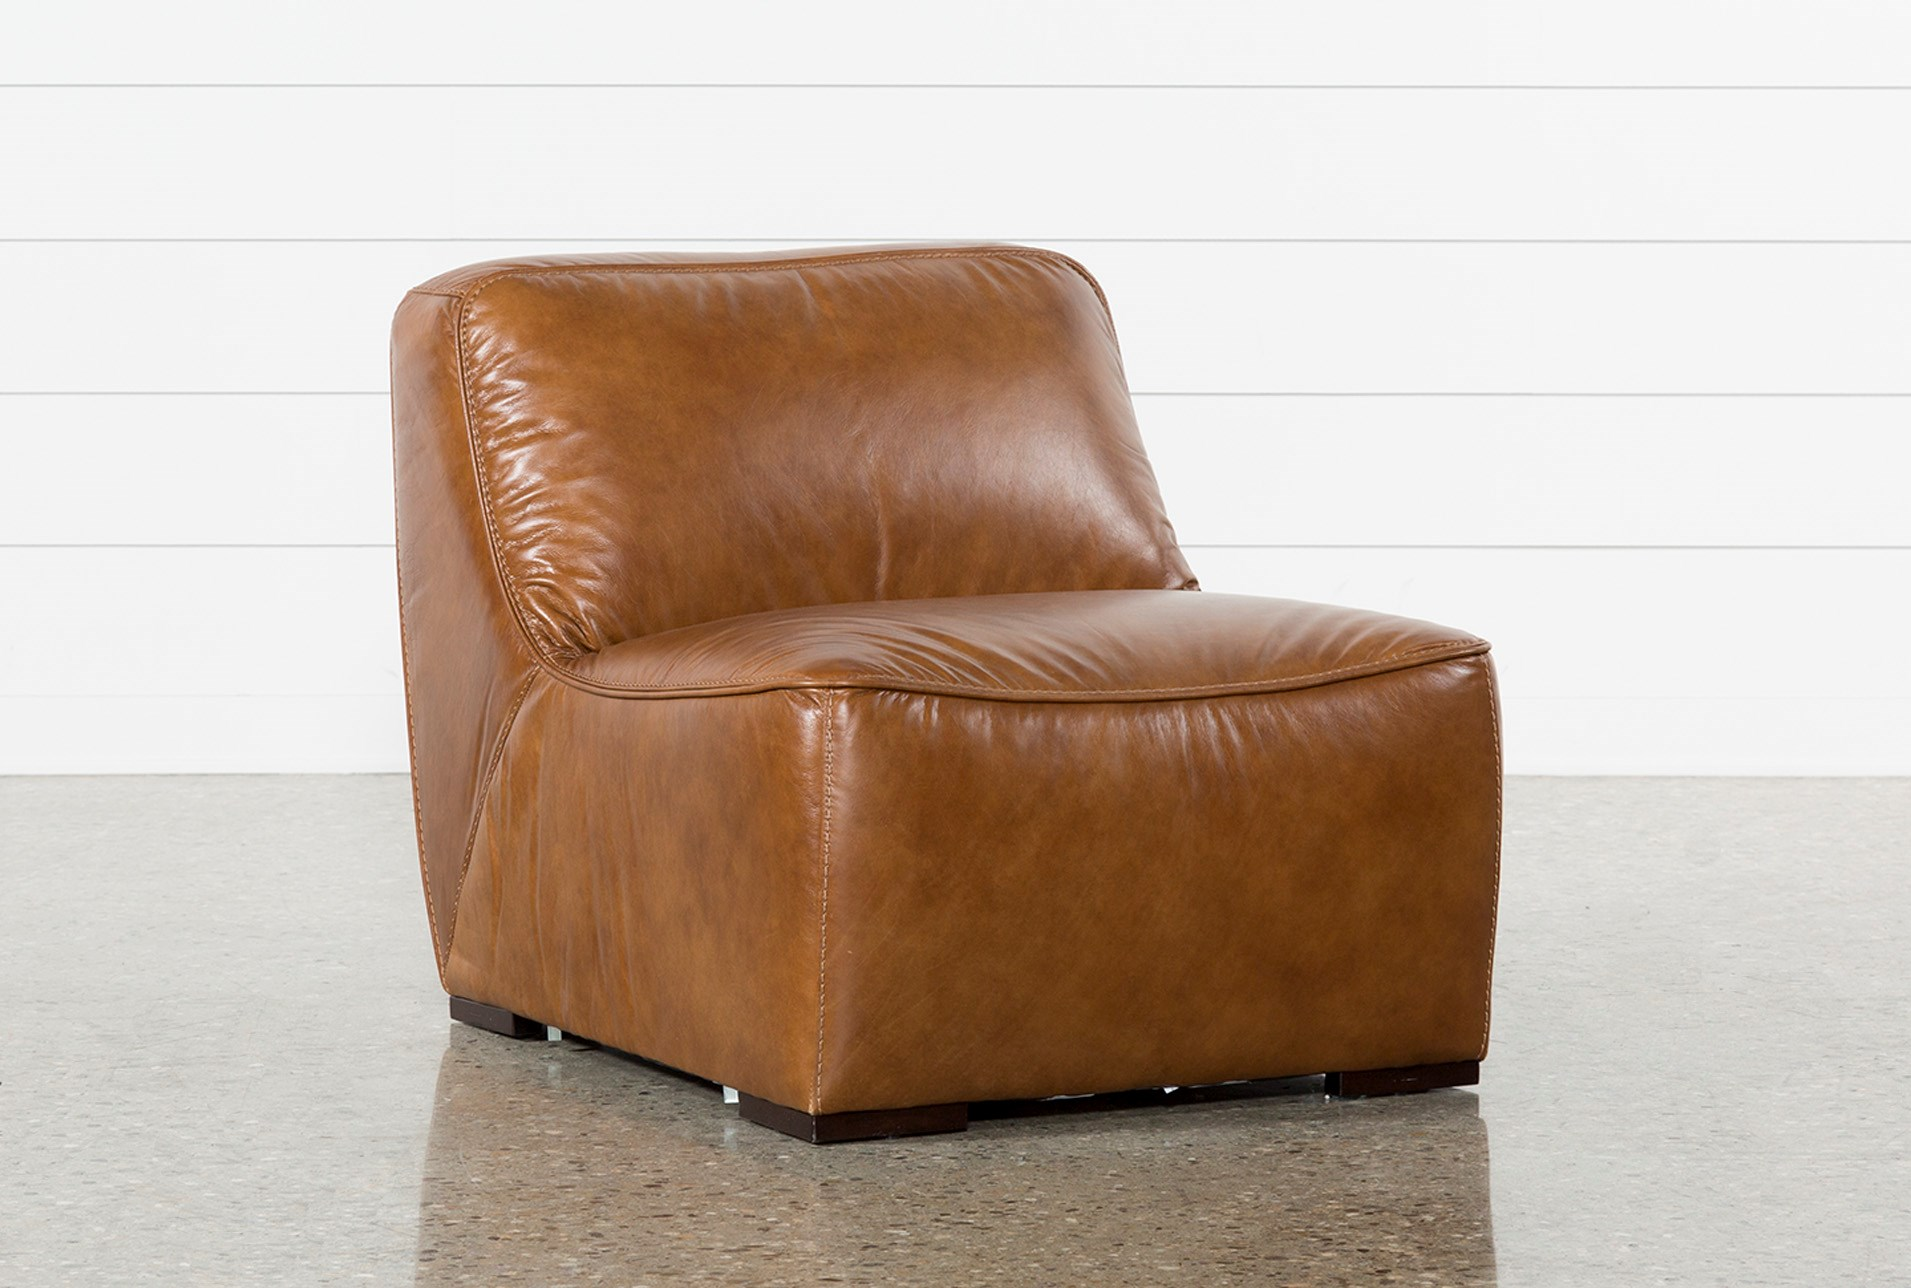 Burton Leather Armless Chair Qty 1 Has Been Successfully Added To Your Cart